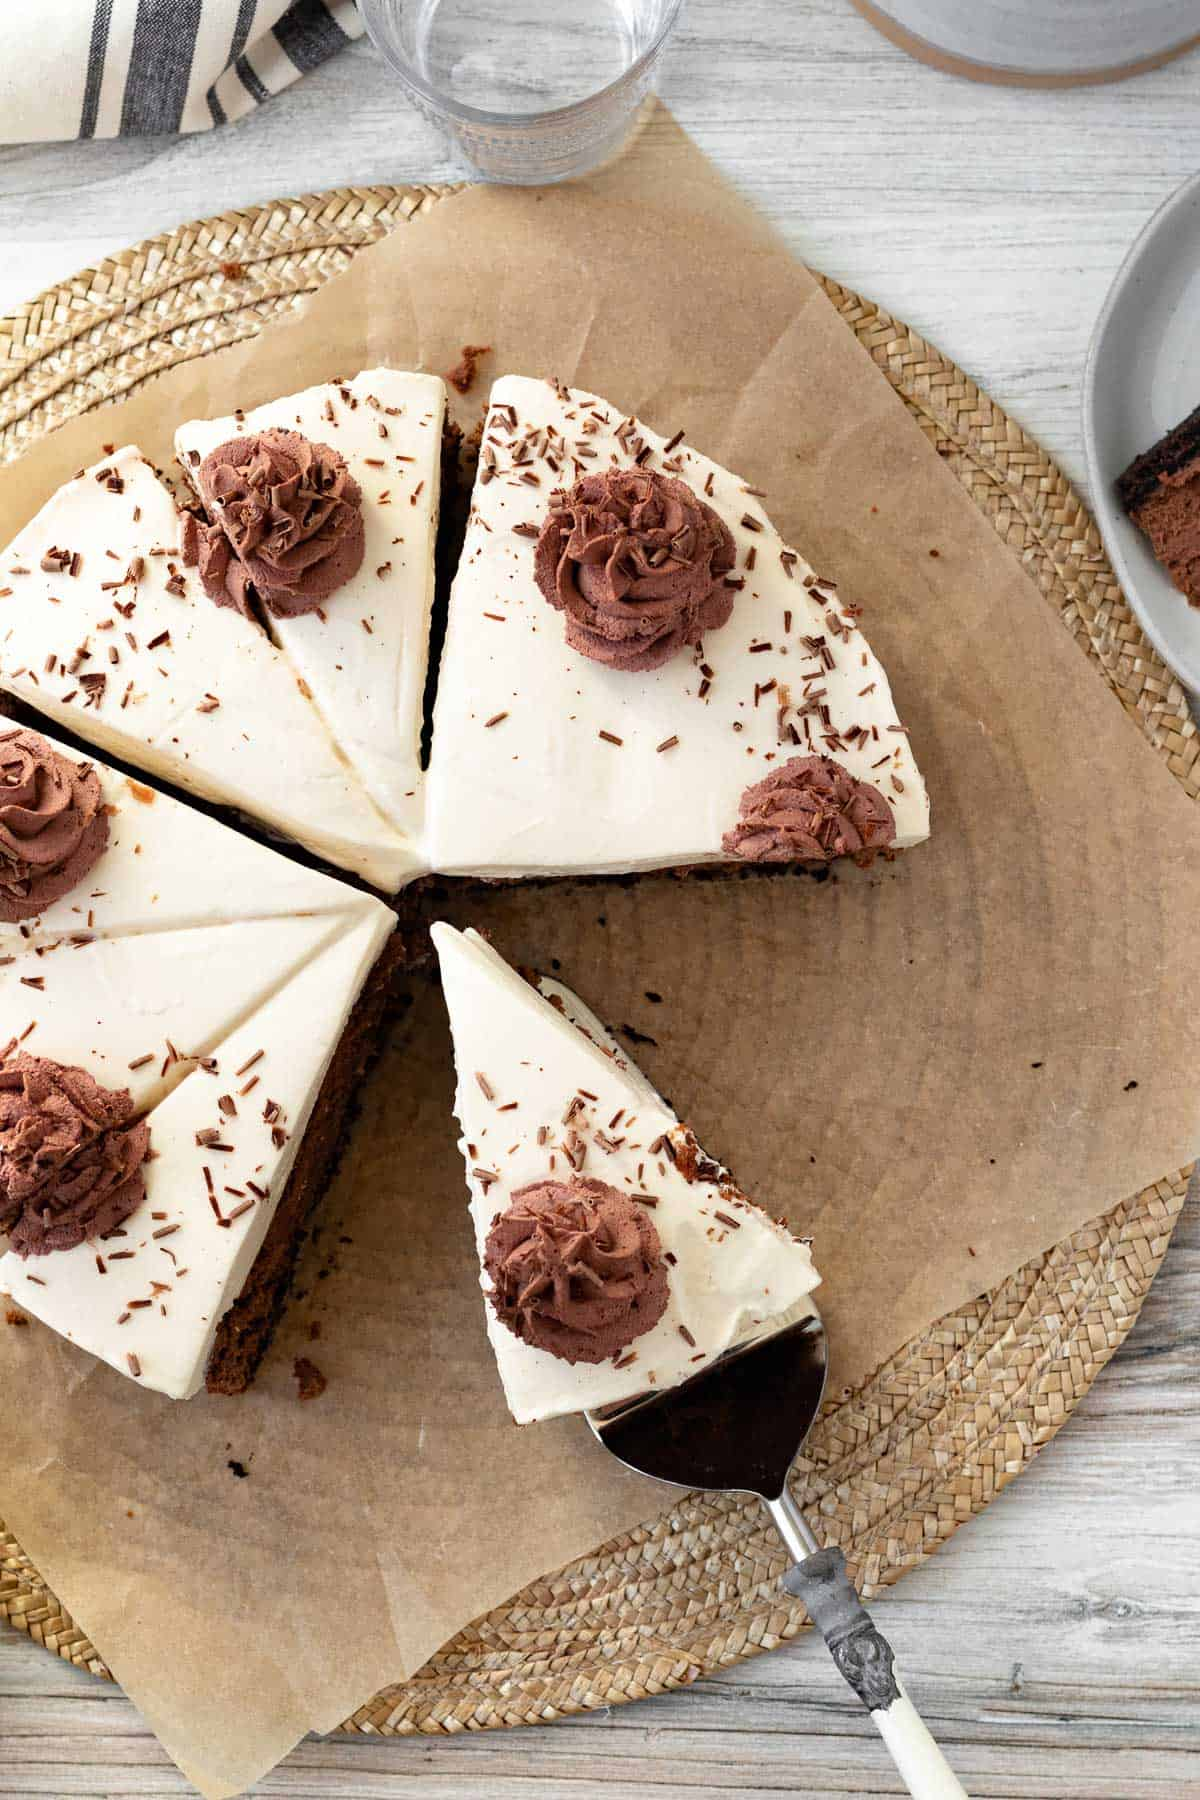 chocolate baileys cheesecake sitting on brown parchment paper with chocolate whipped cream swirls